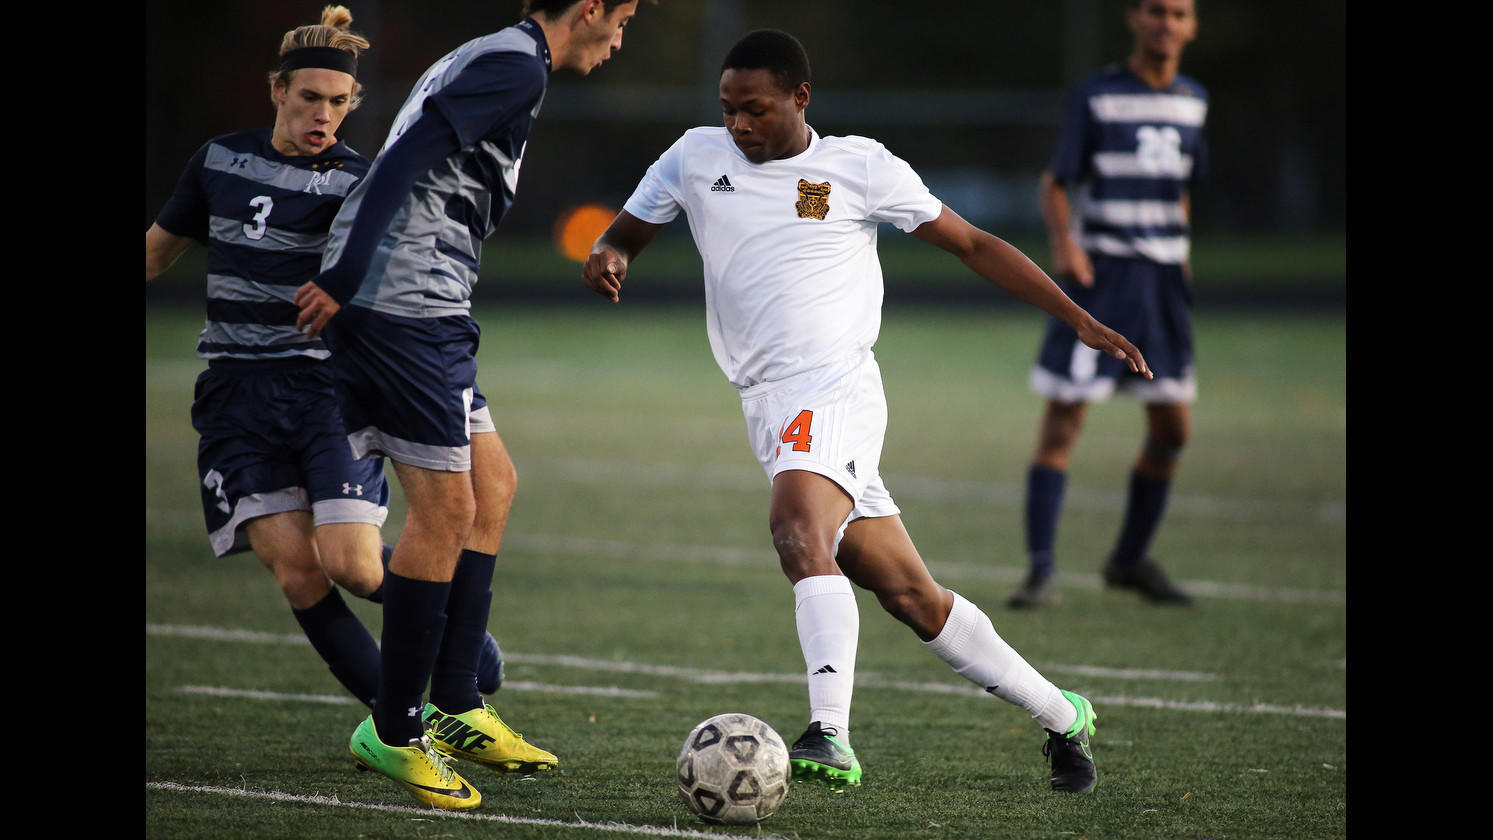 42c2e1b47 Oakland Mills boys soccer tops Marriotts Ridge to advance to sectional  final - Howard County Times